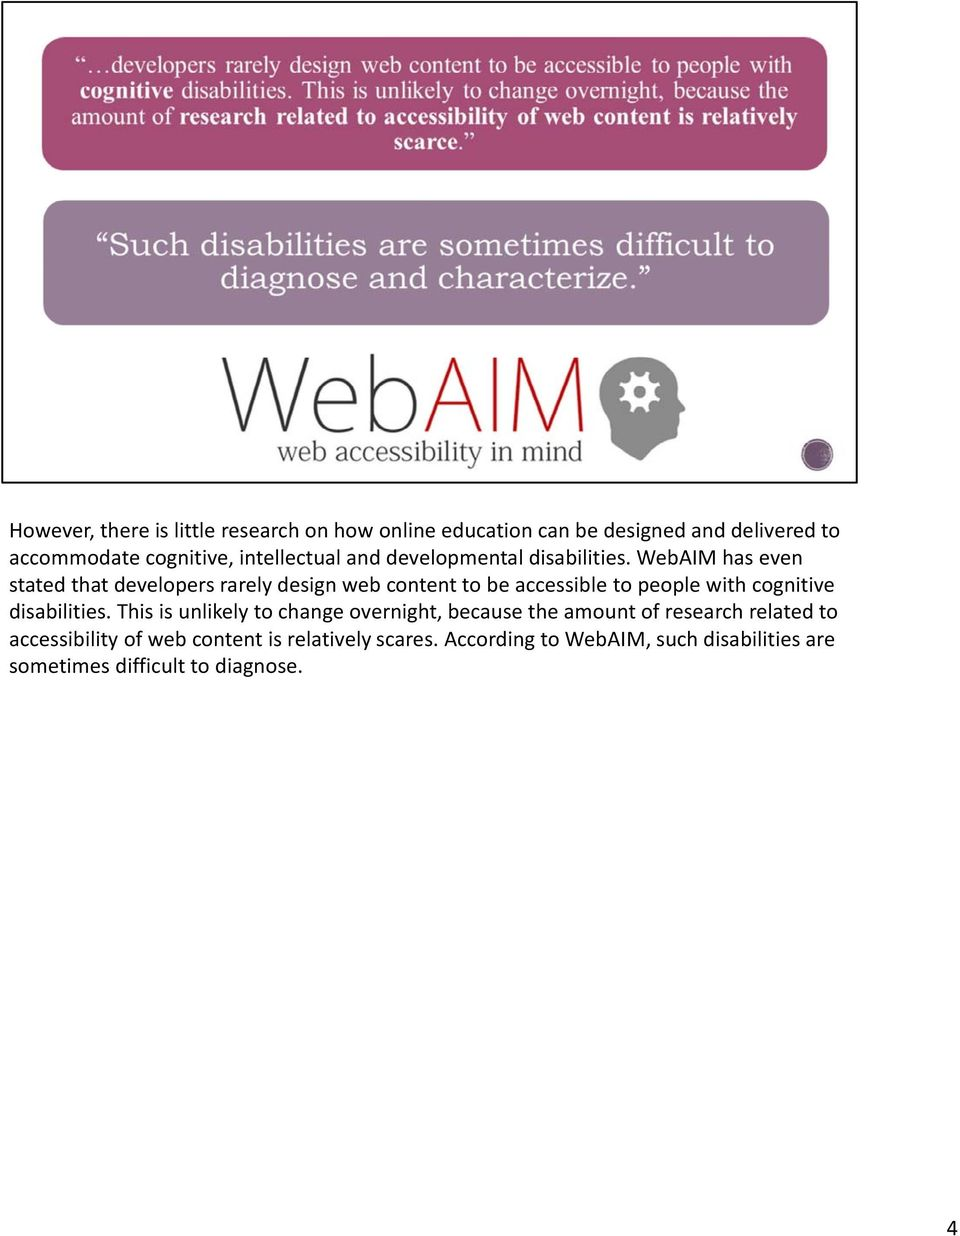 WebAIM has even stated that developers rarely design web content to be accessible to people with cognitive disabilities.